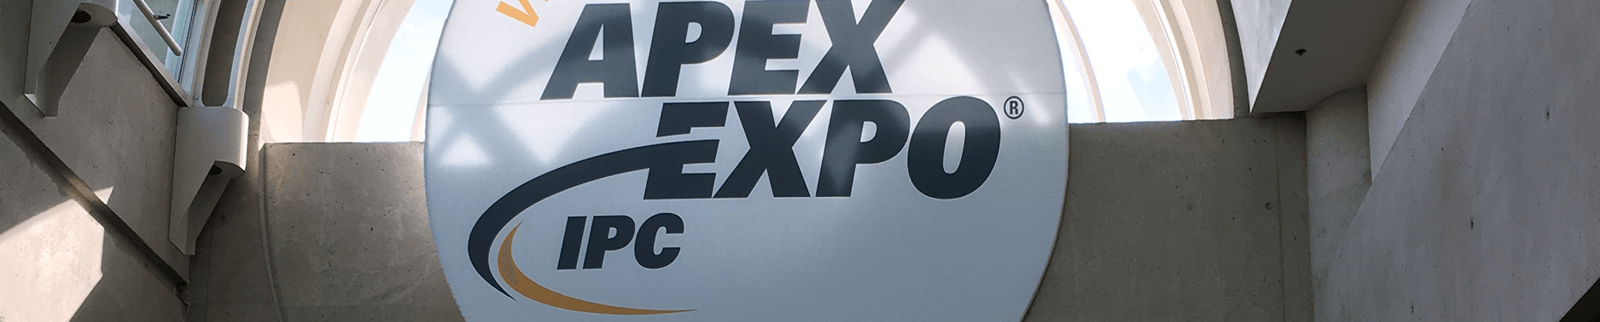 Revotech: IPC APEX EXPO 2018 - PCB and Electronics Industries Showcase